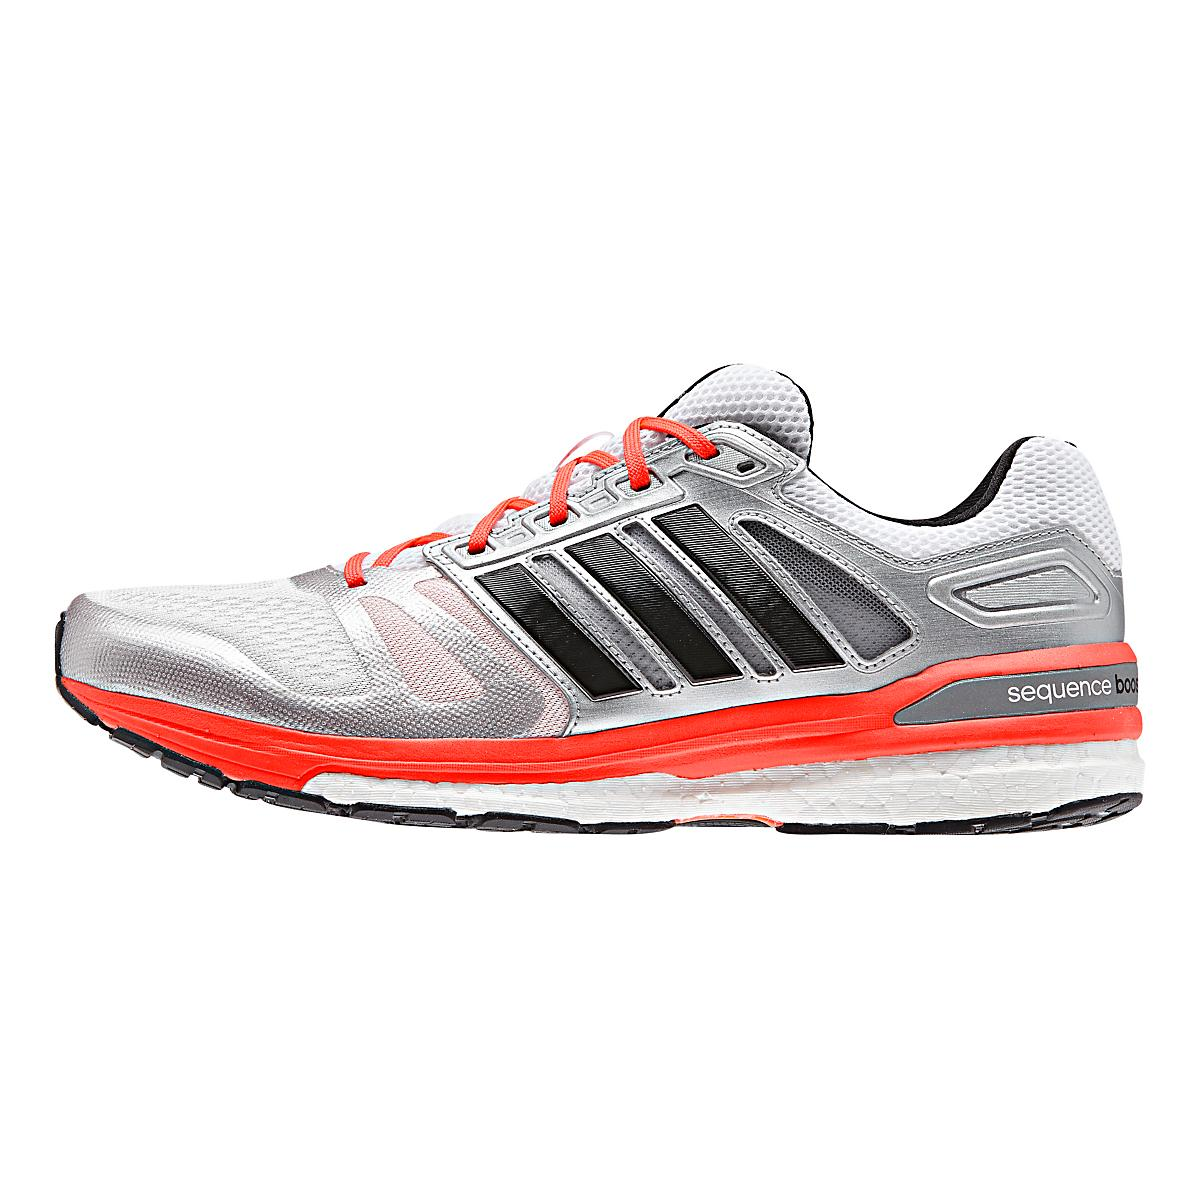 0bcac38435891 Mens adidas Supernova Sequence 7 Boost Running Shoe at Road Runner Sports